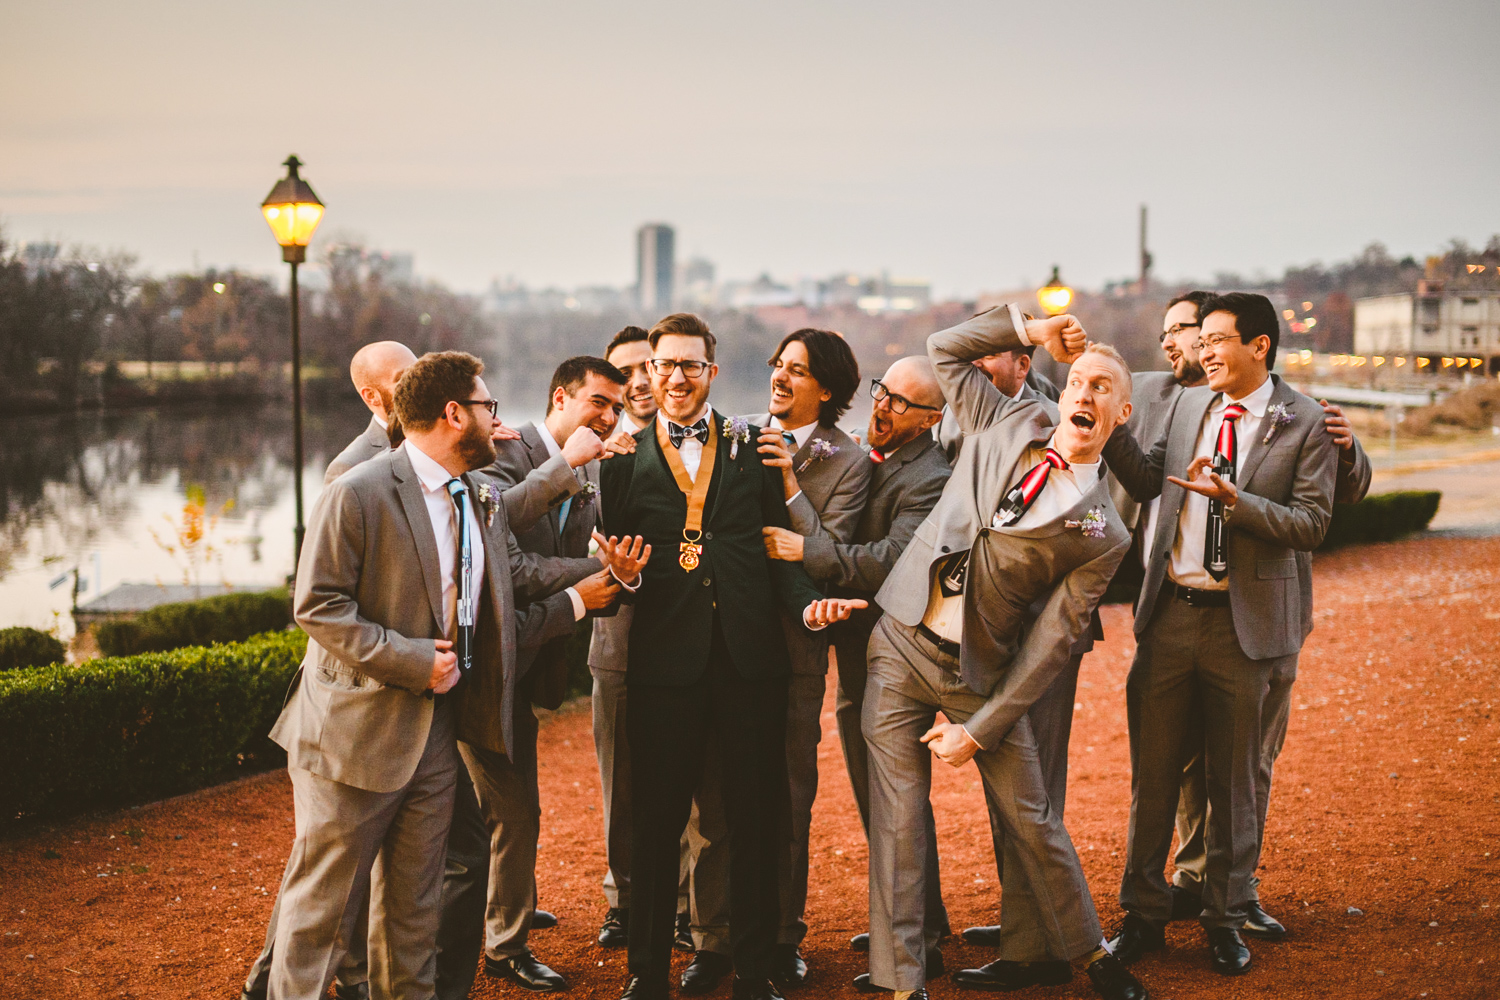 024 - groom with groomsmen being weird.jpg